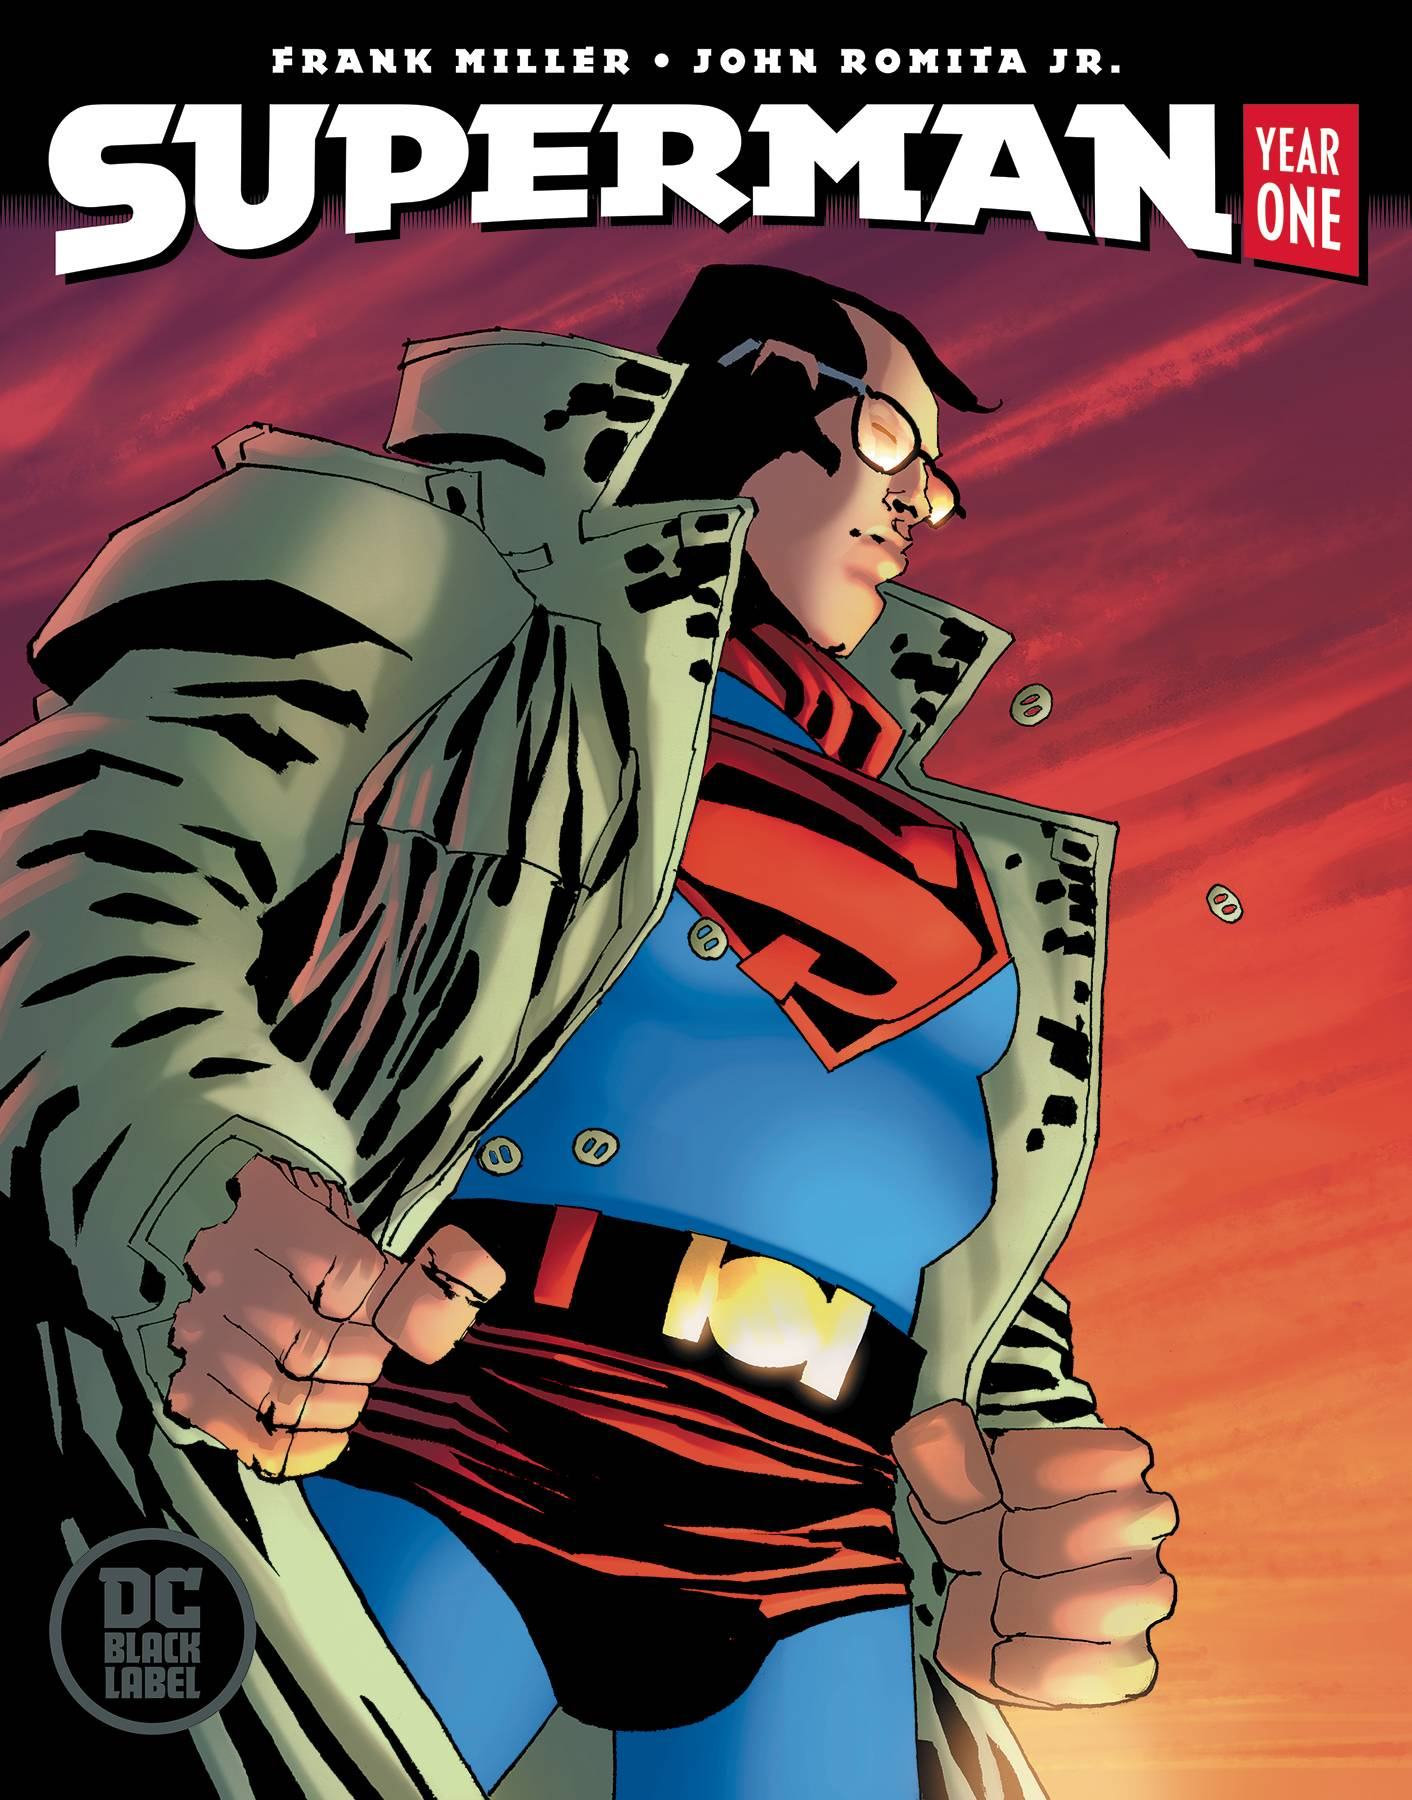 SUPERMAN YEAR ONE 2 of 3 MILLER COVER.jpg